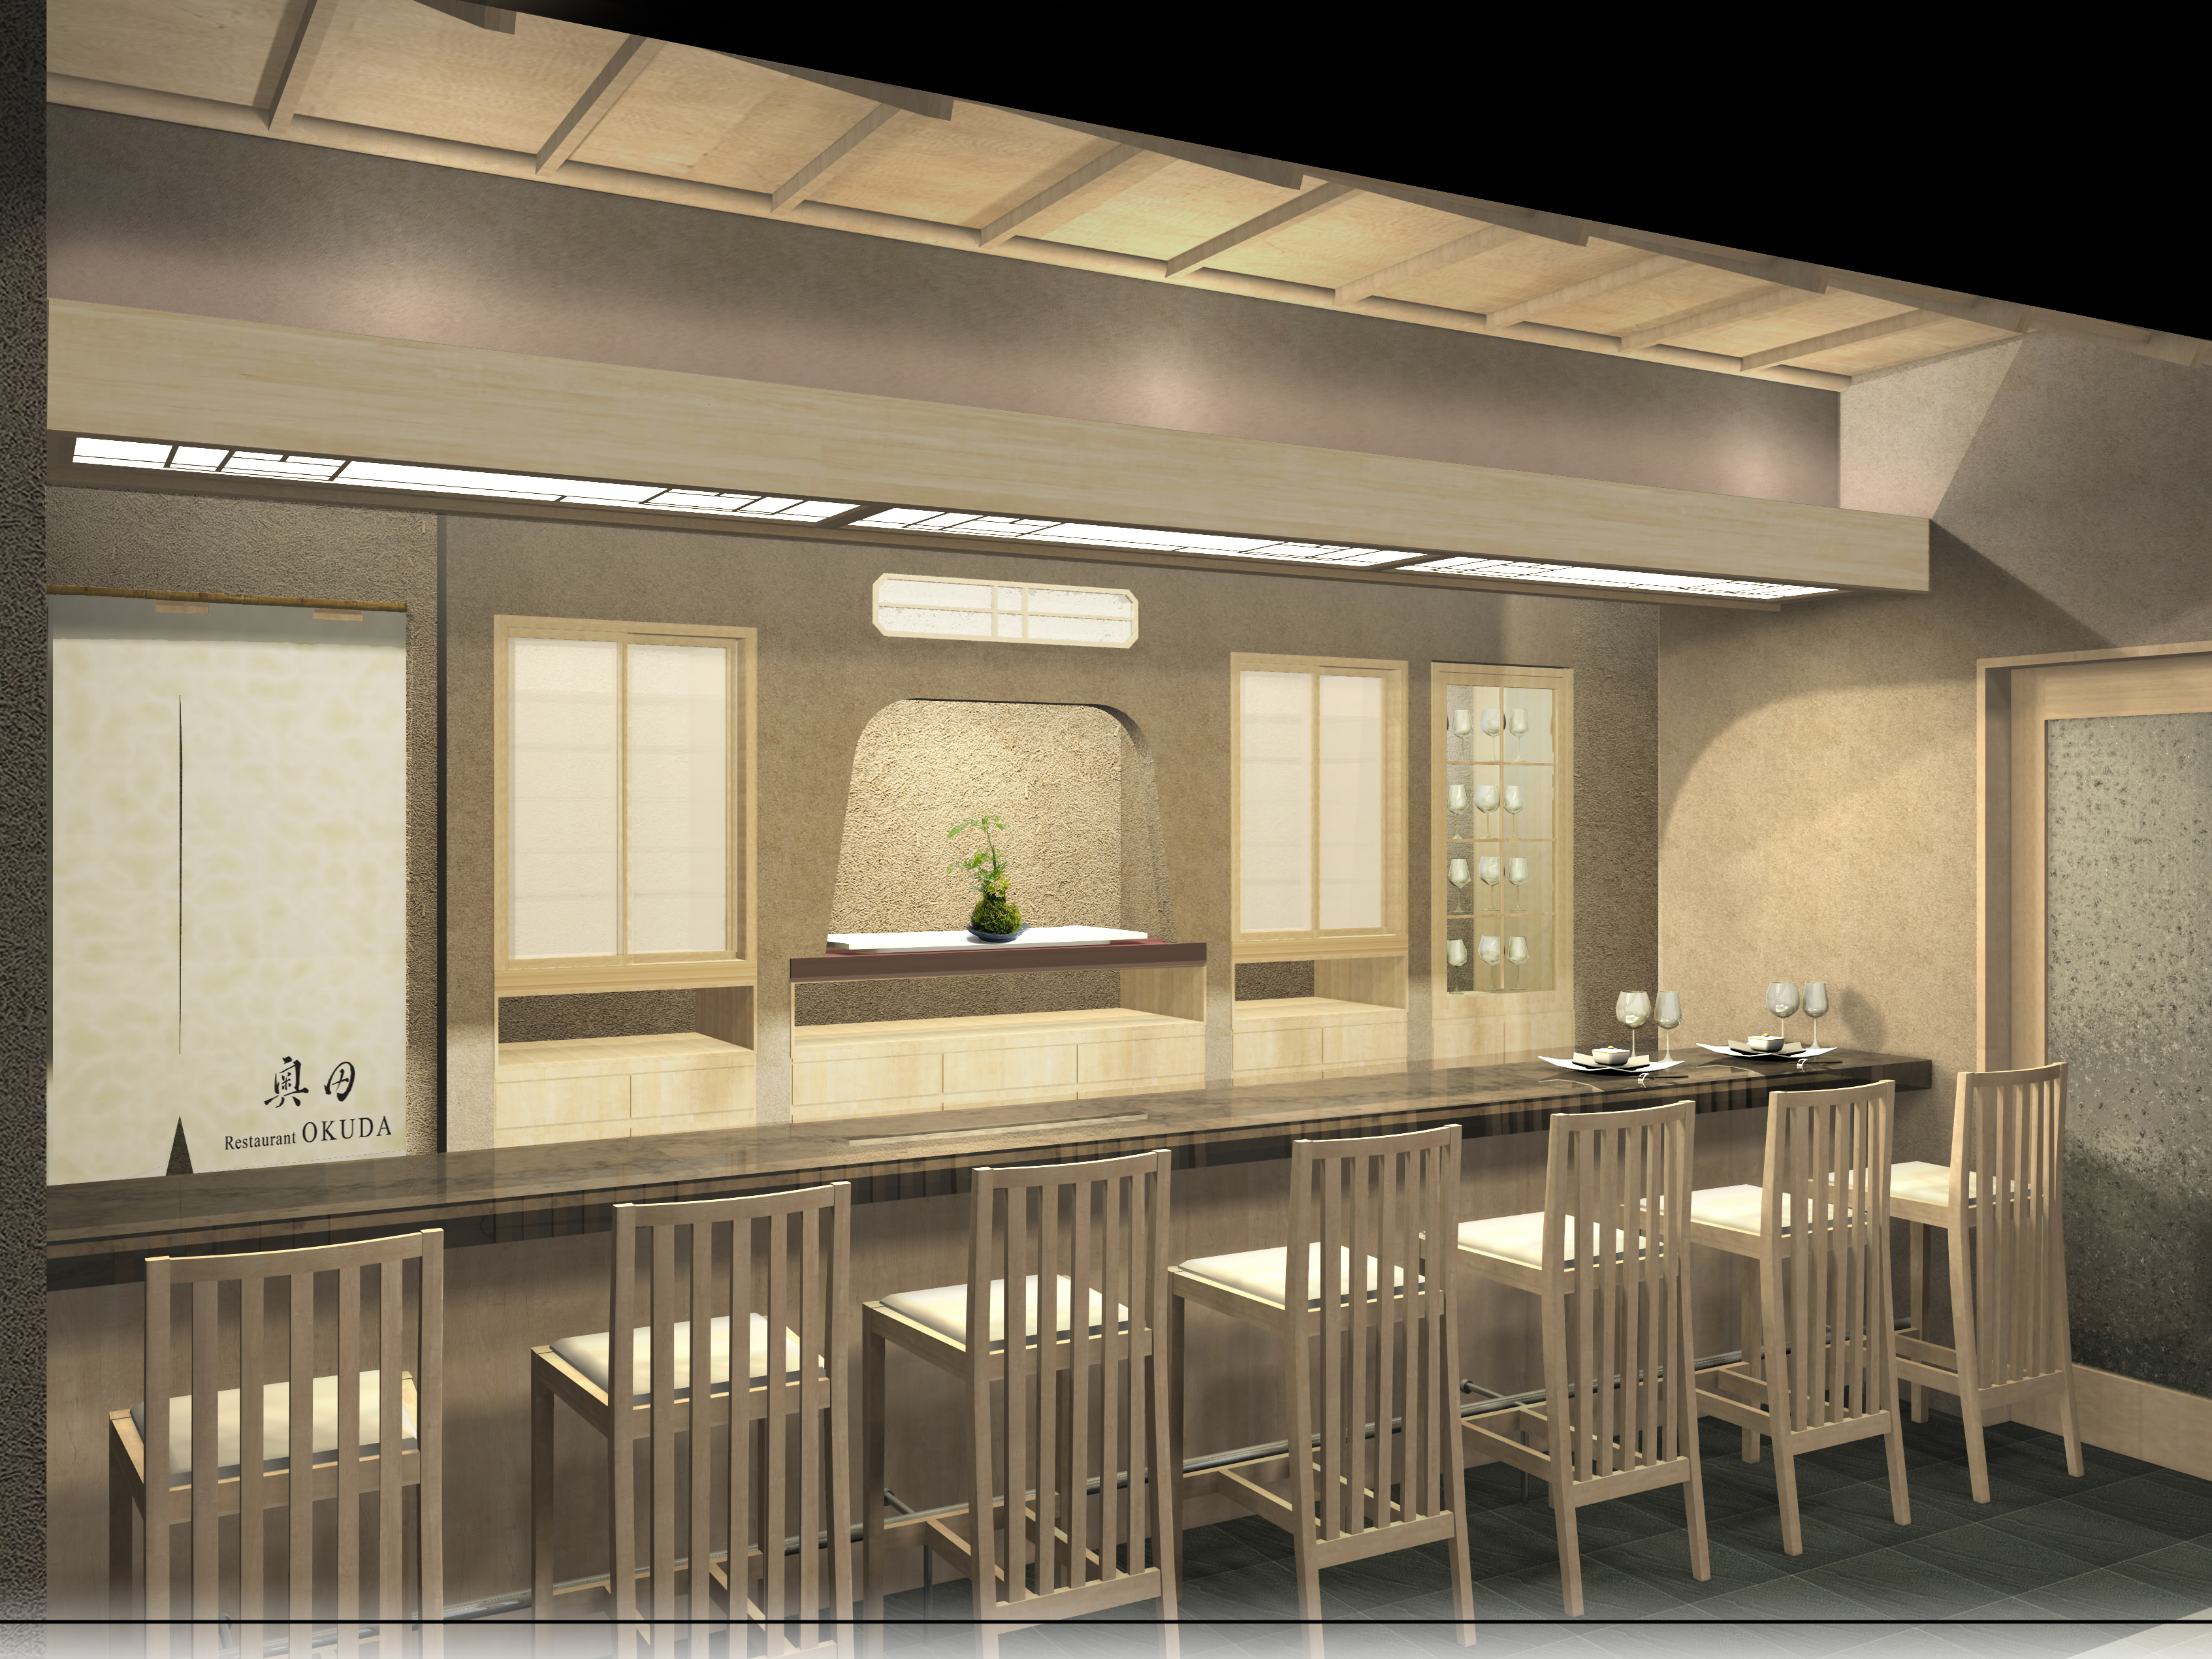 Michelin-Starred Japanese Chef Plans First NYC Restaurant